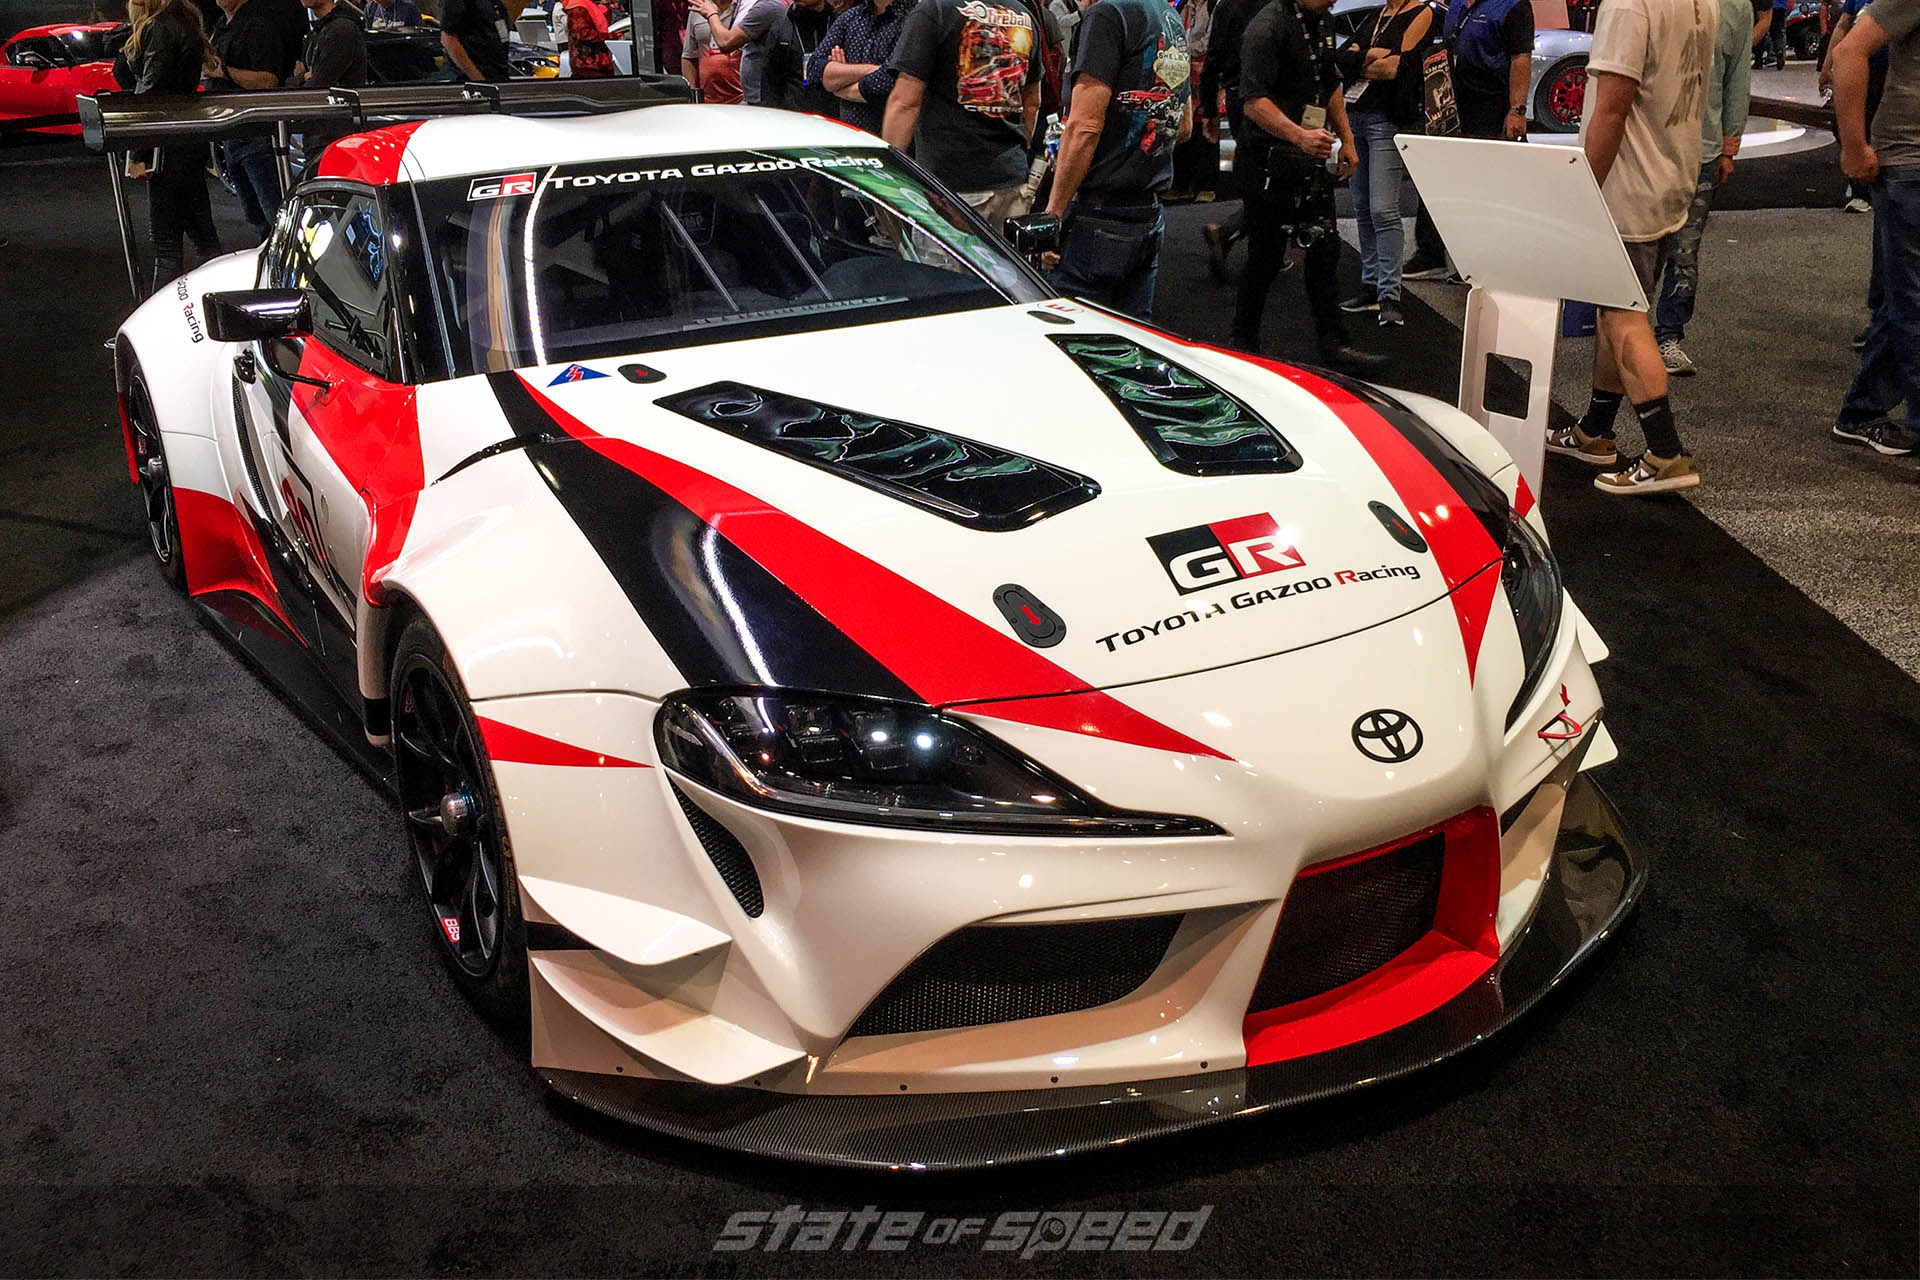 MKV Supra by Gazoo Racing